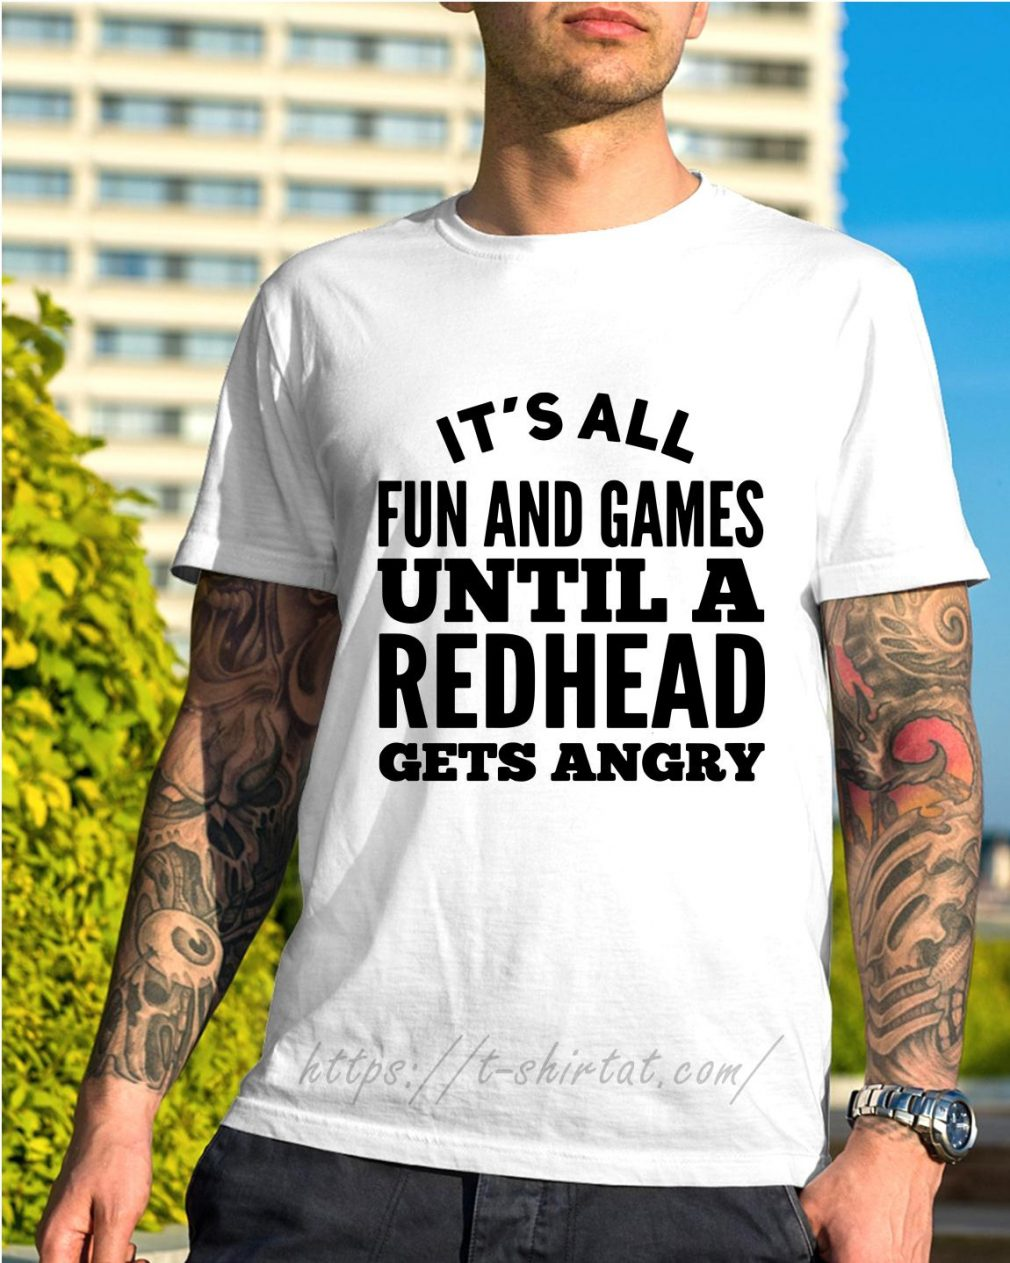 It's all fun and games until a redhead gets angry shirt